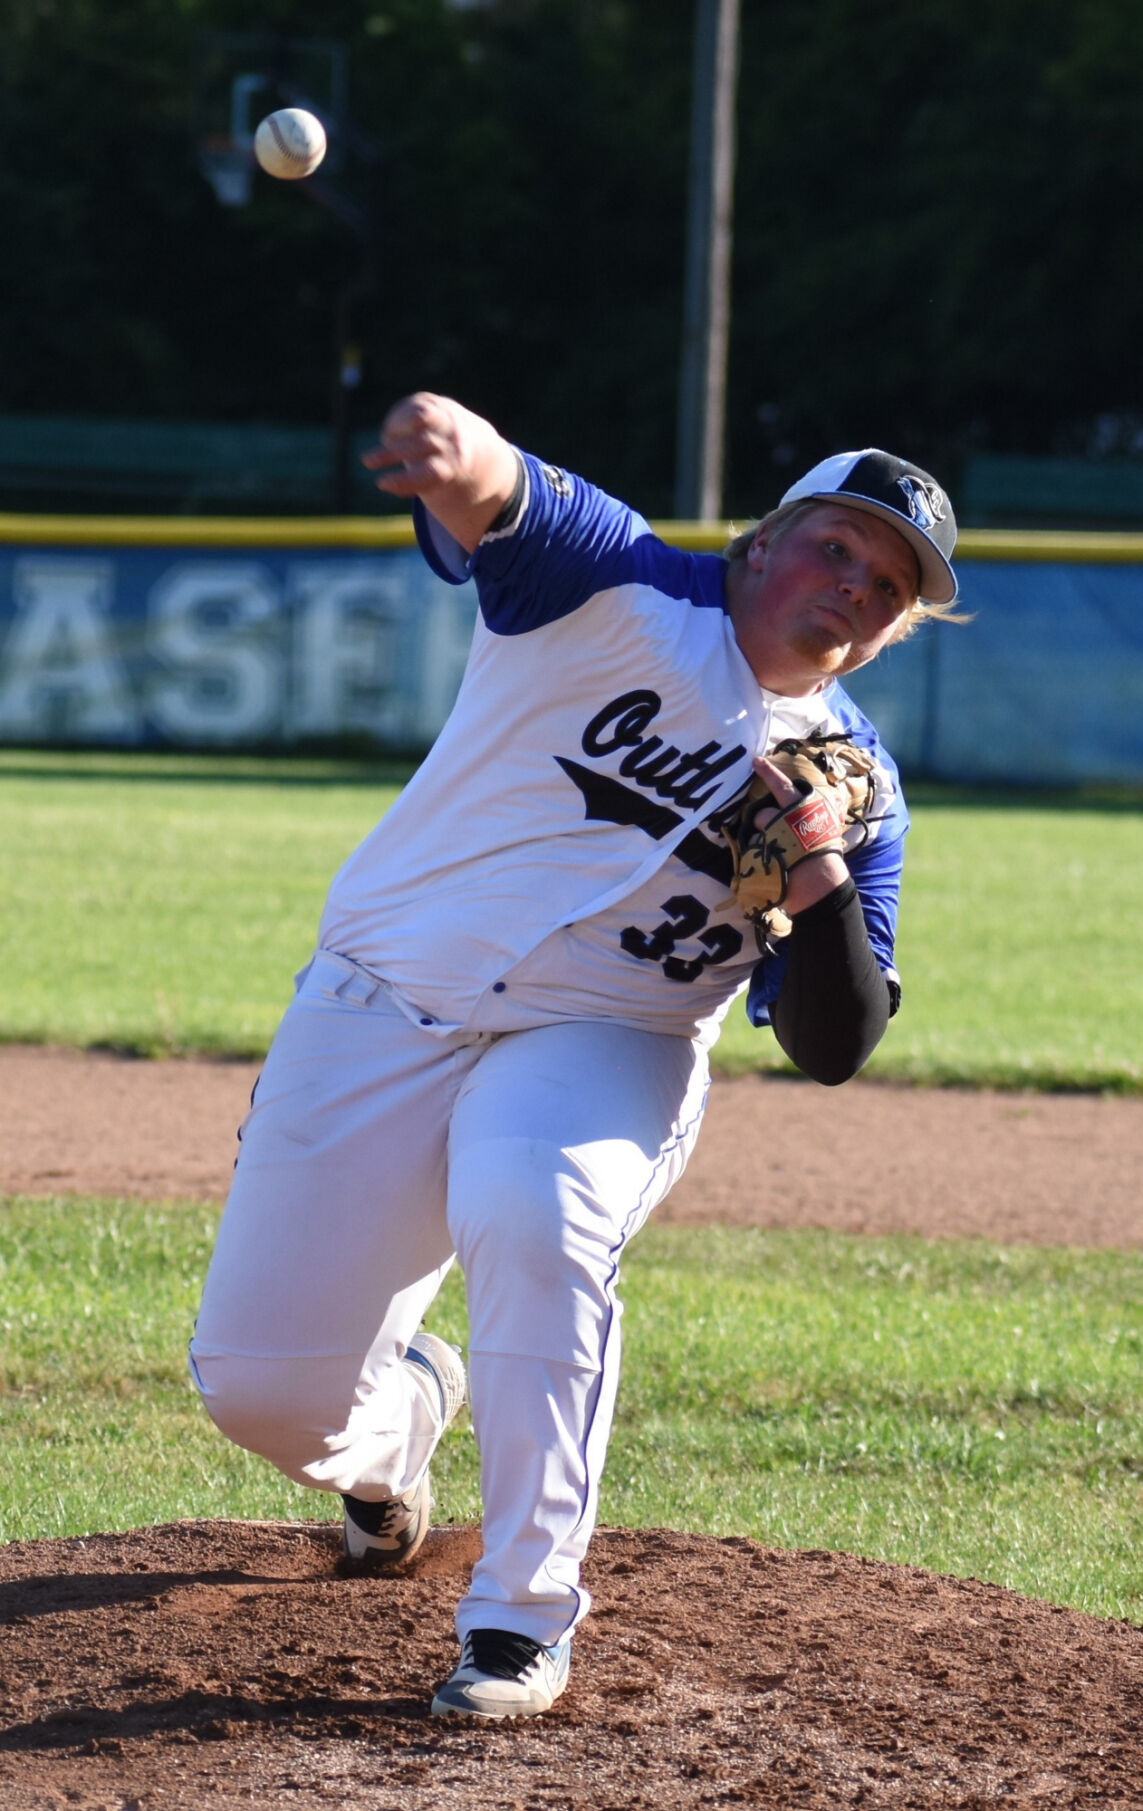 LOCAL ROUNDUP: Royals blank 15U Outlaws; Lady Reds win